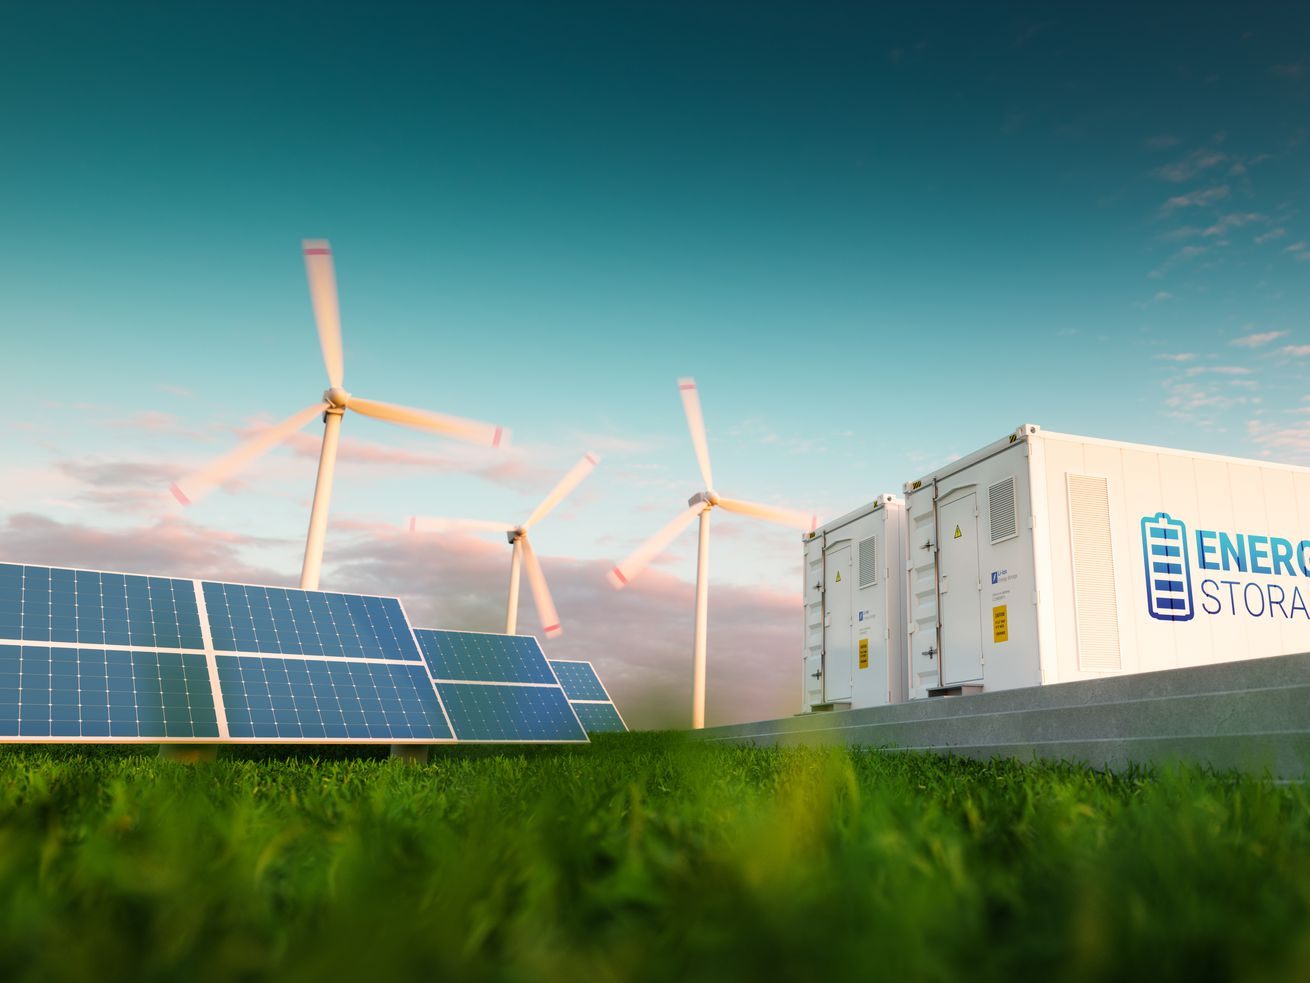 A photo-illustration of renewable energy sources, including solar panels and wind turbines.